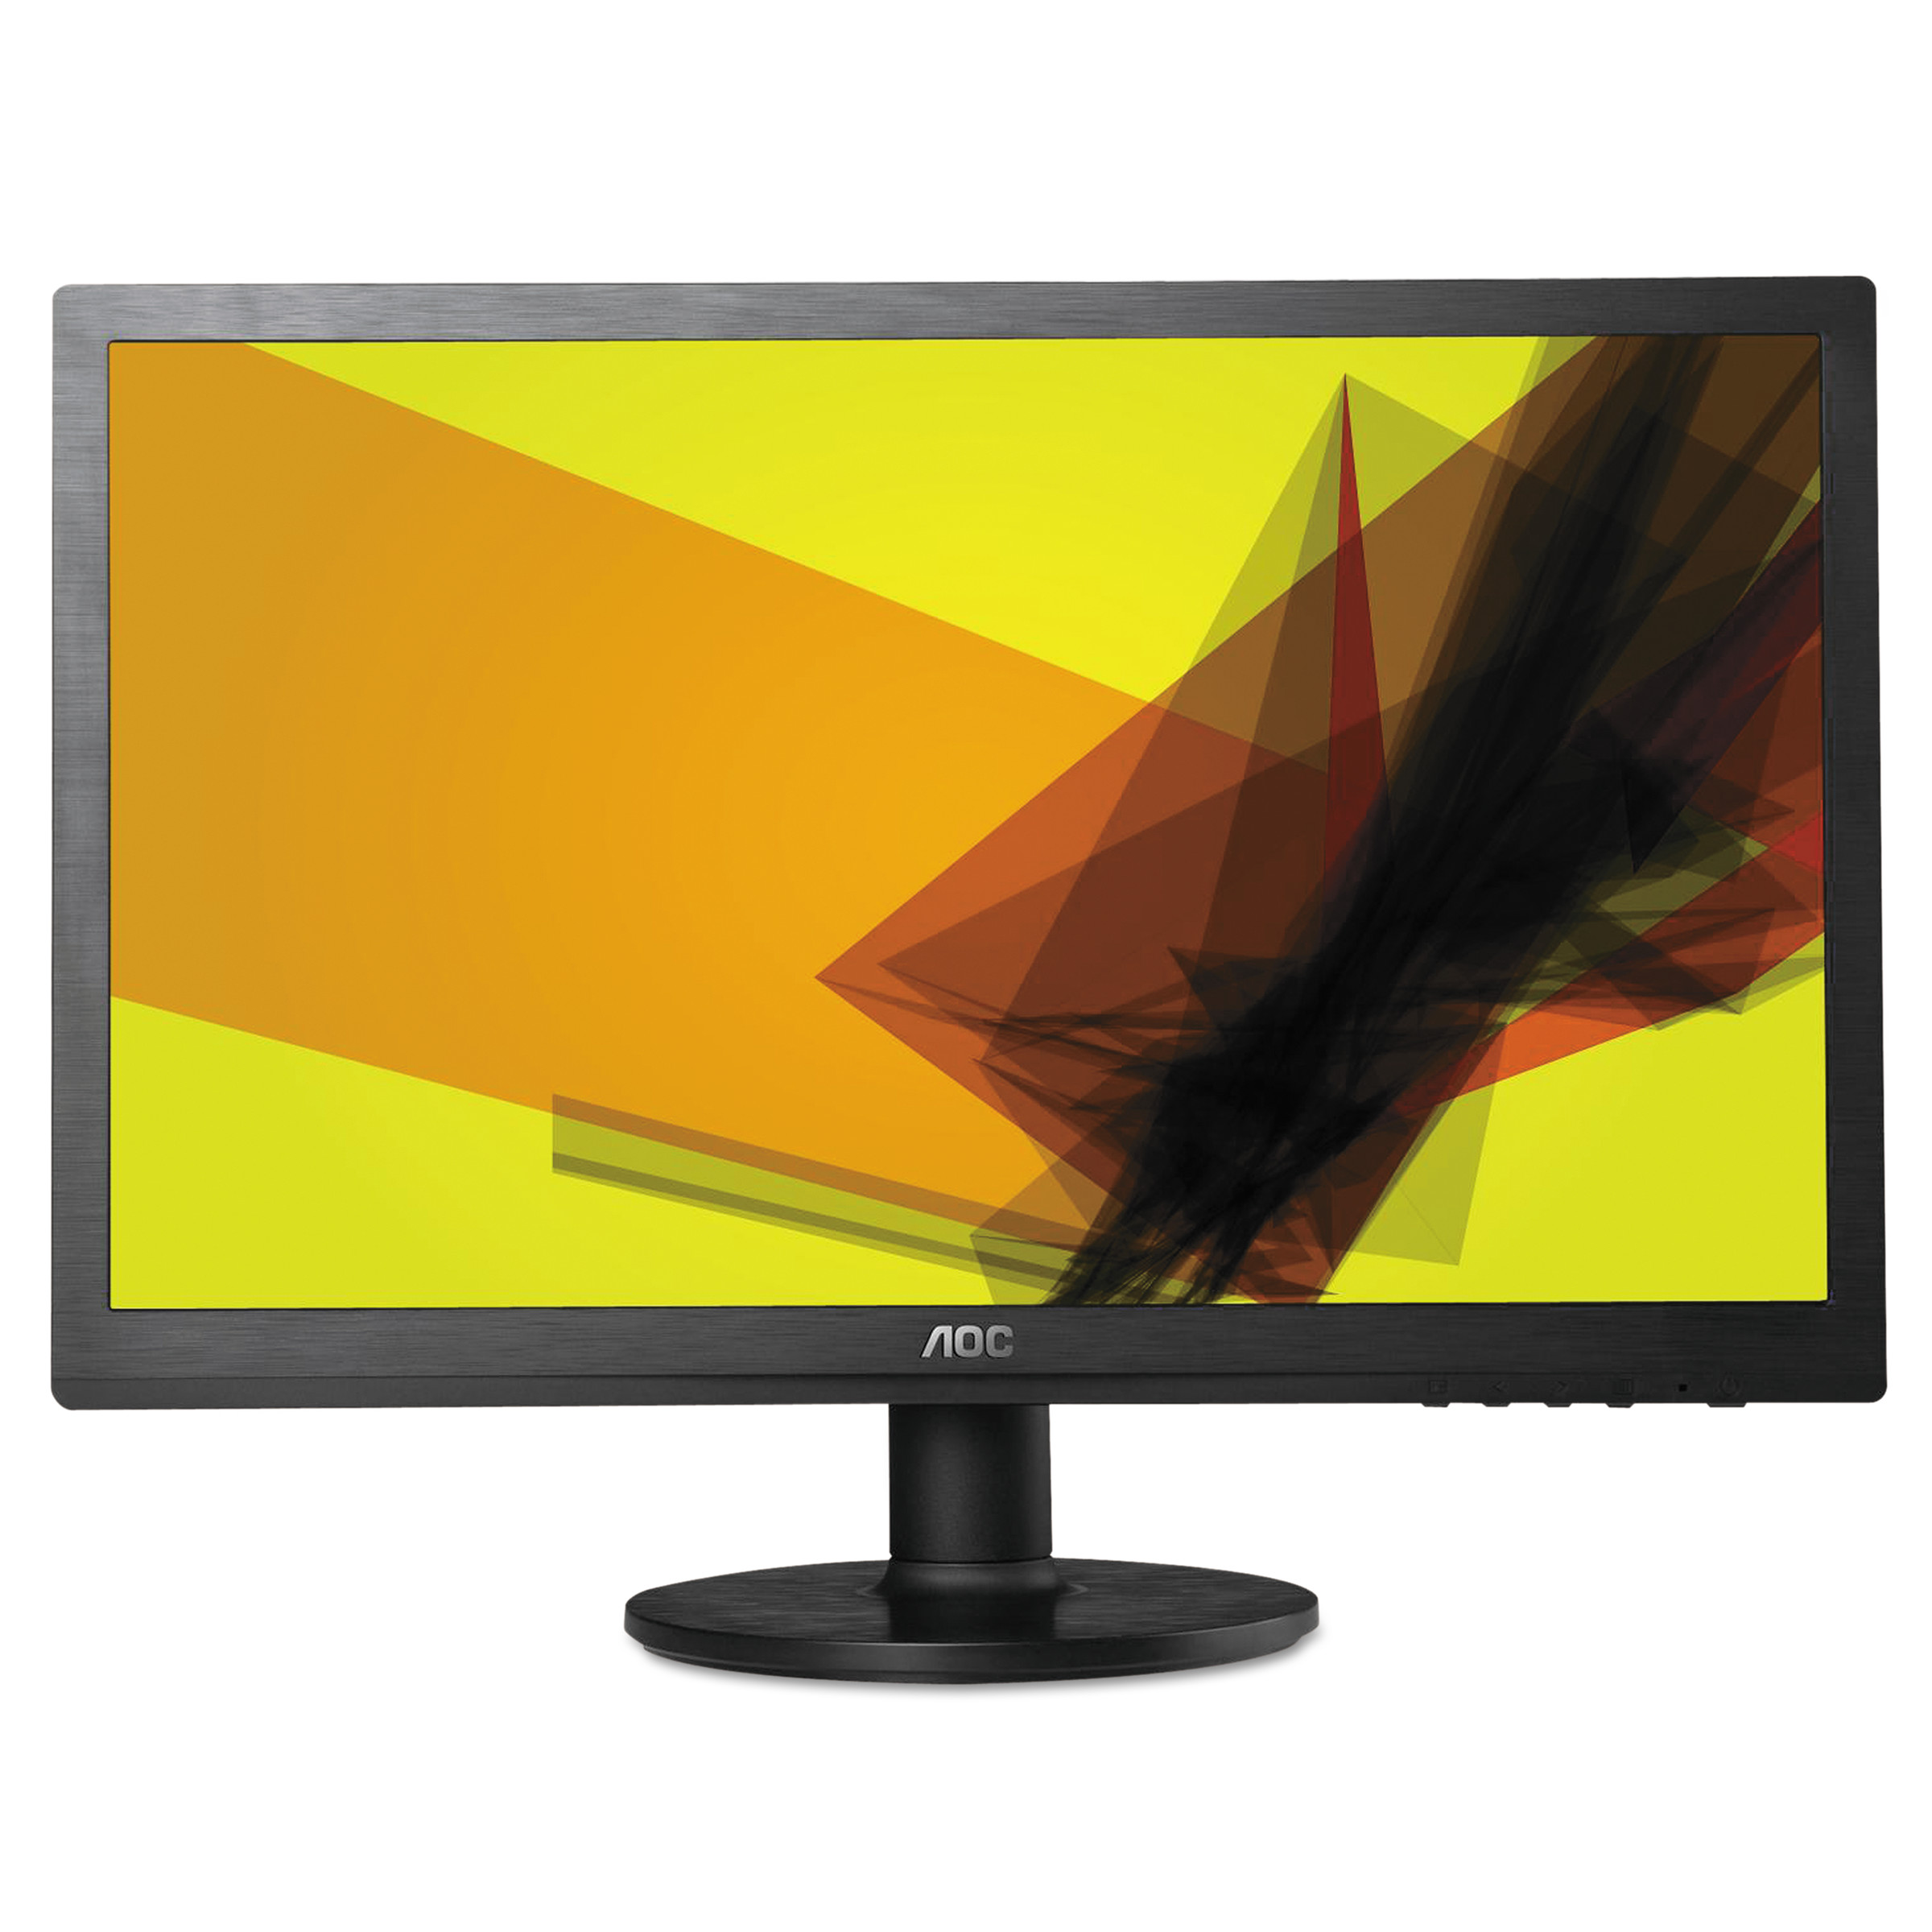 AOC 60SWD-Series Widescreen LED Monitor, 21.5